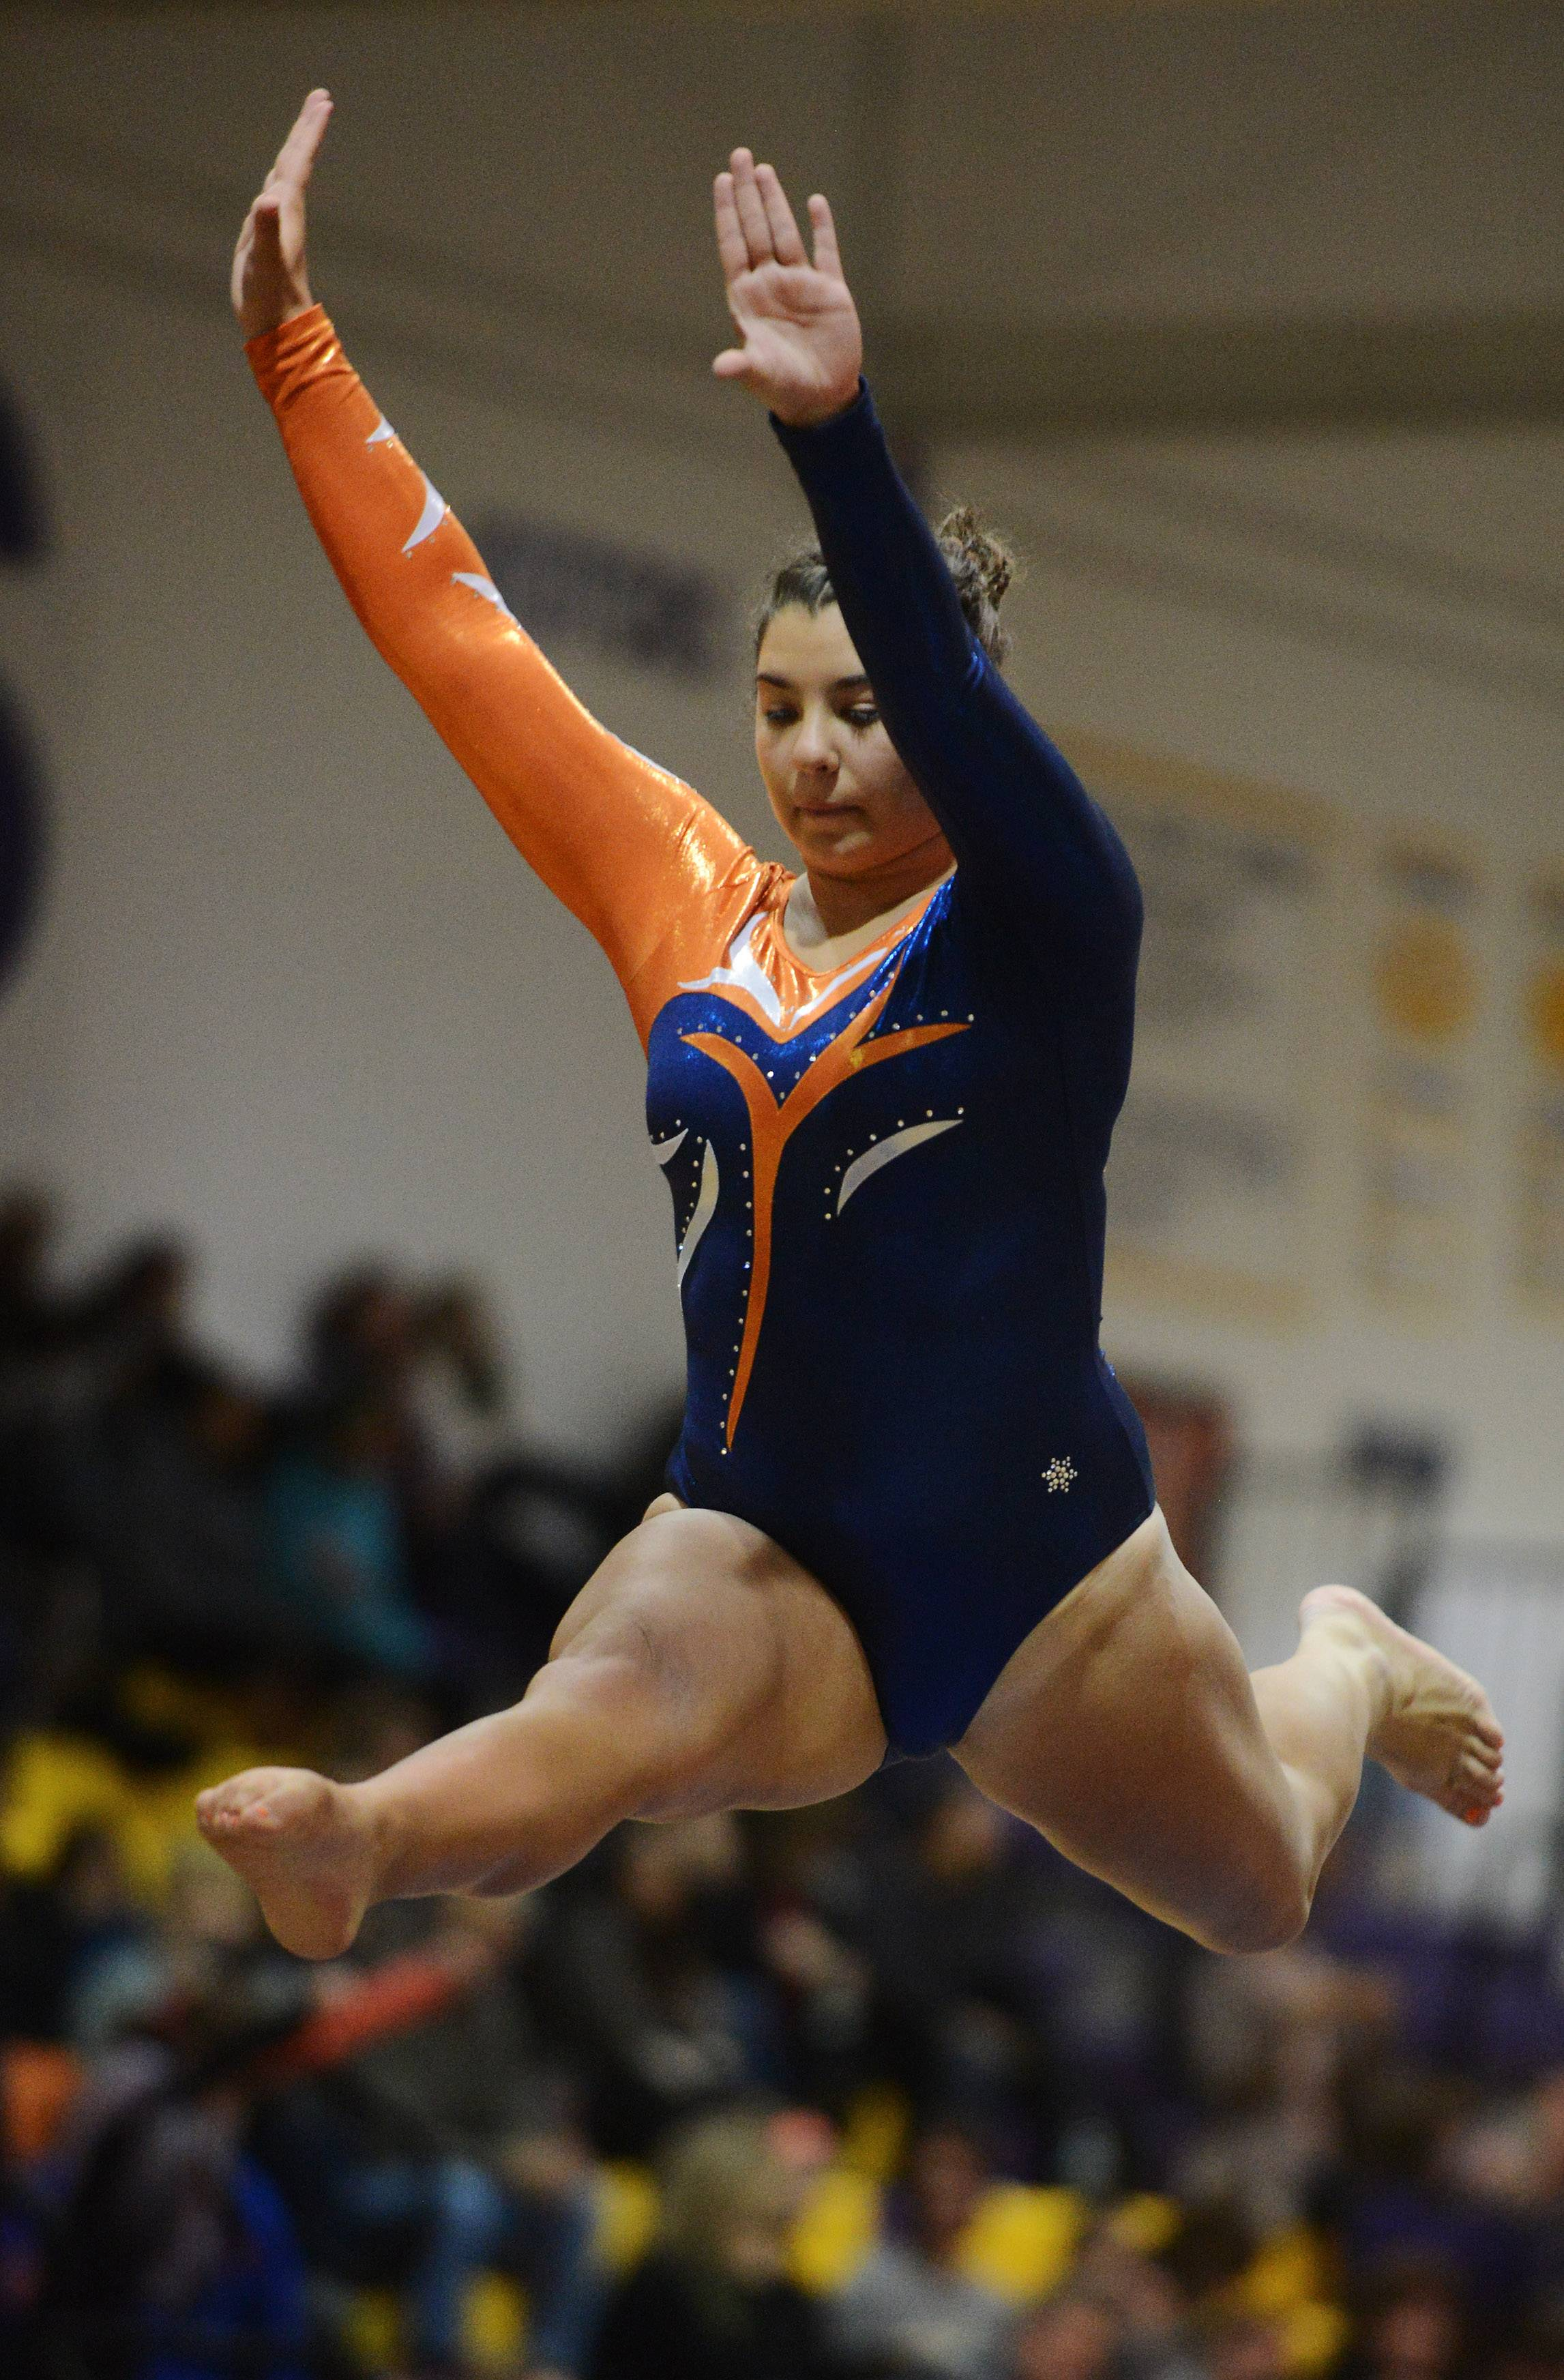 Buffalo Grove's Melanie Goldfarb competes on the balance beam during the Rolling Meadows invitational Saturday.